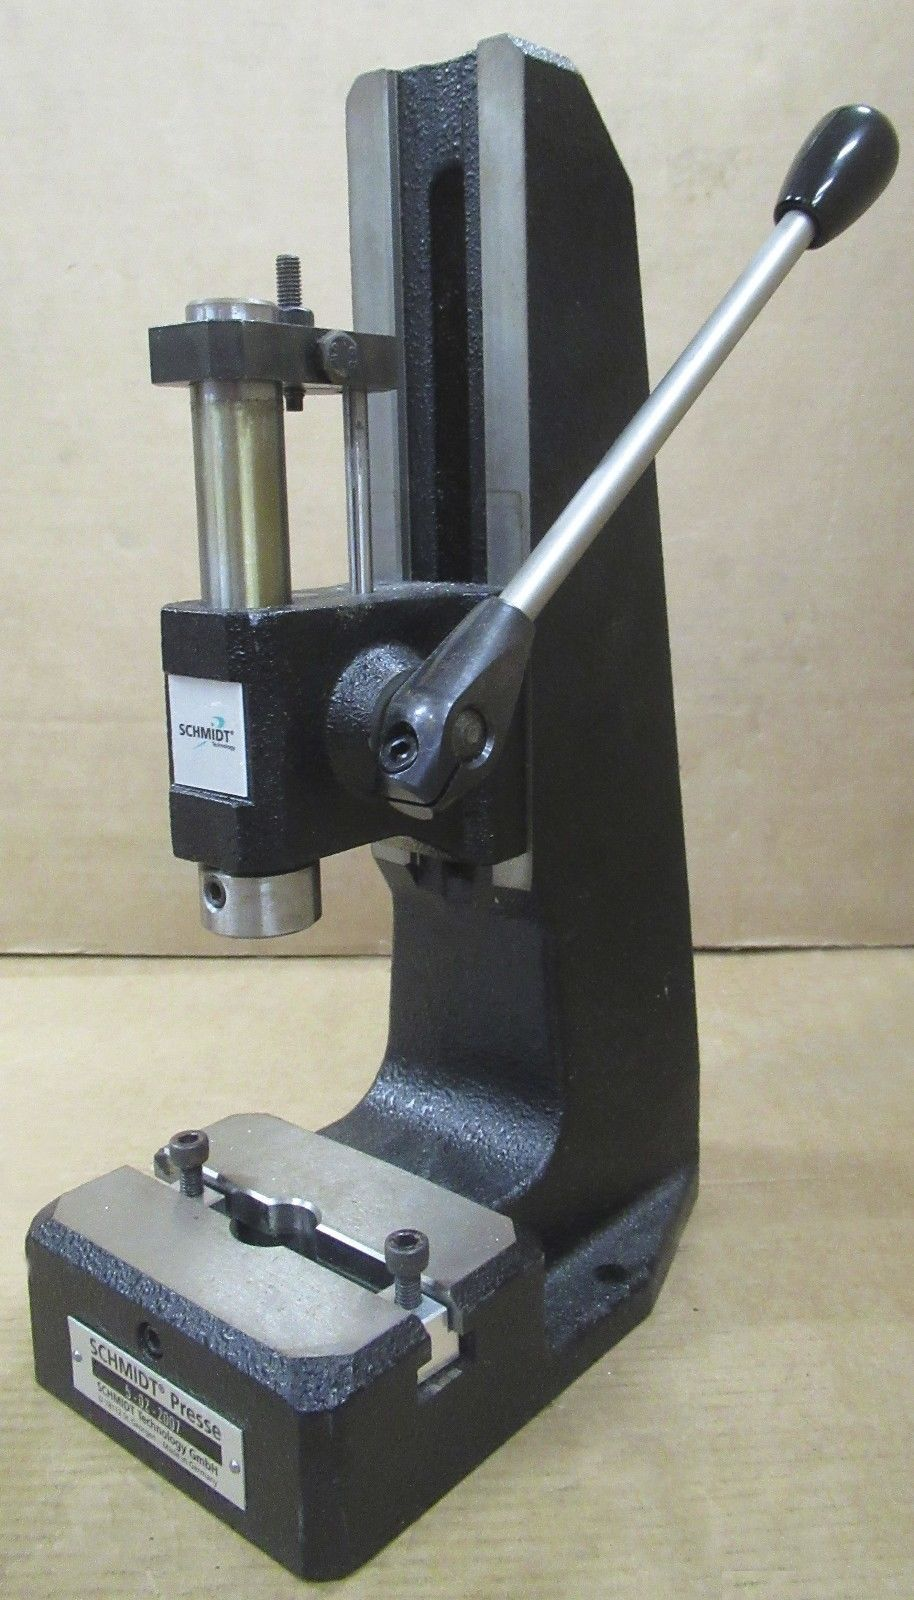 Rack And Pinion >> Schmidt 5-02-2007 Rack And Pinion Manual Hand Press Work Top Bench